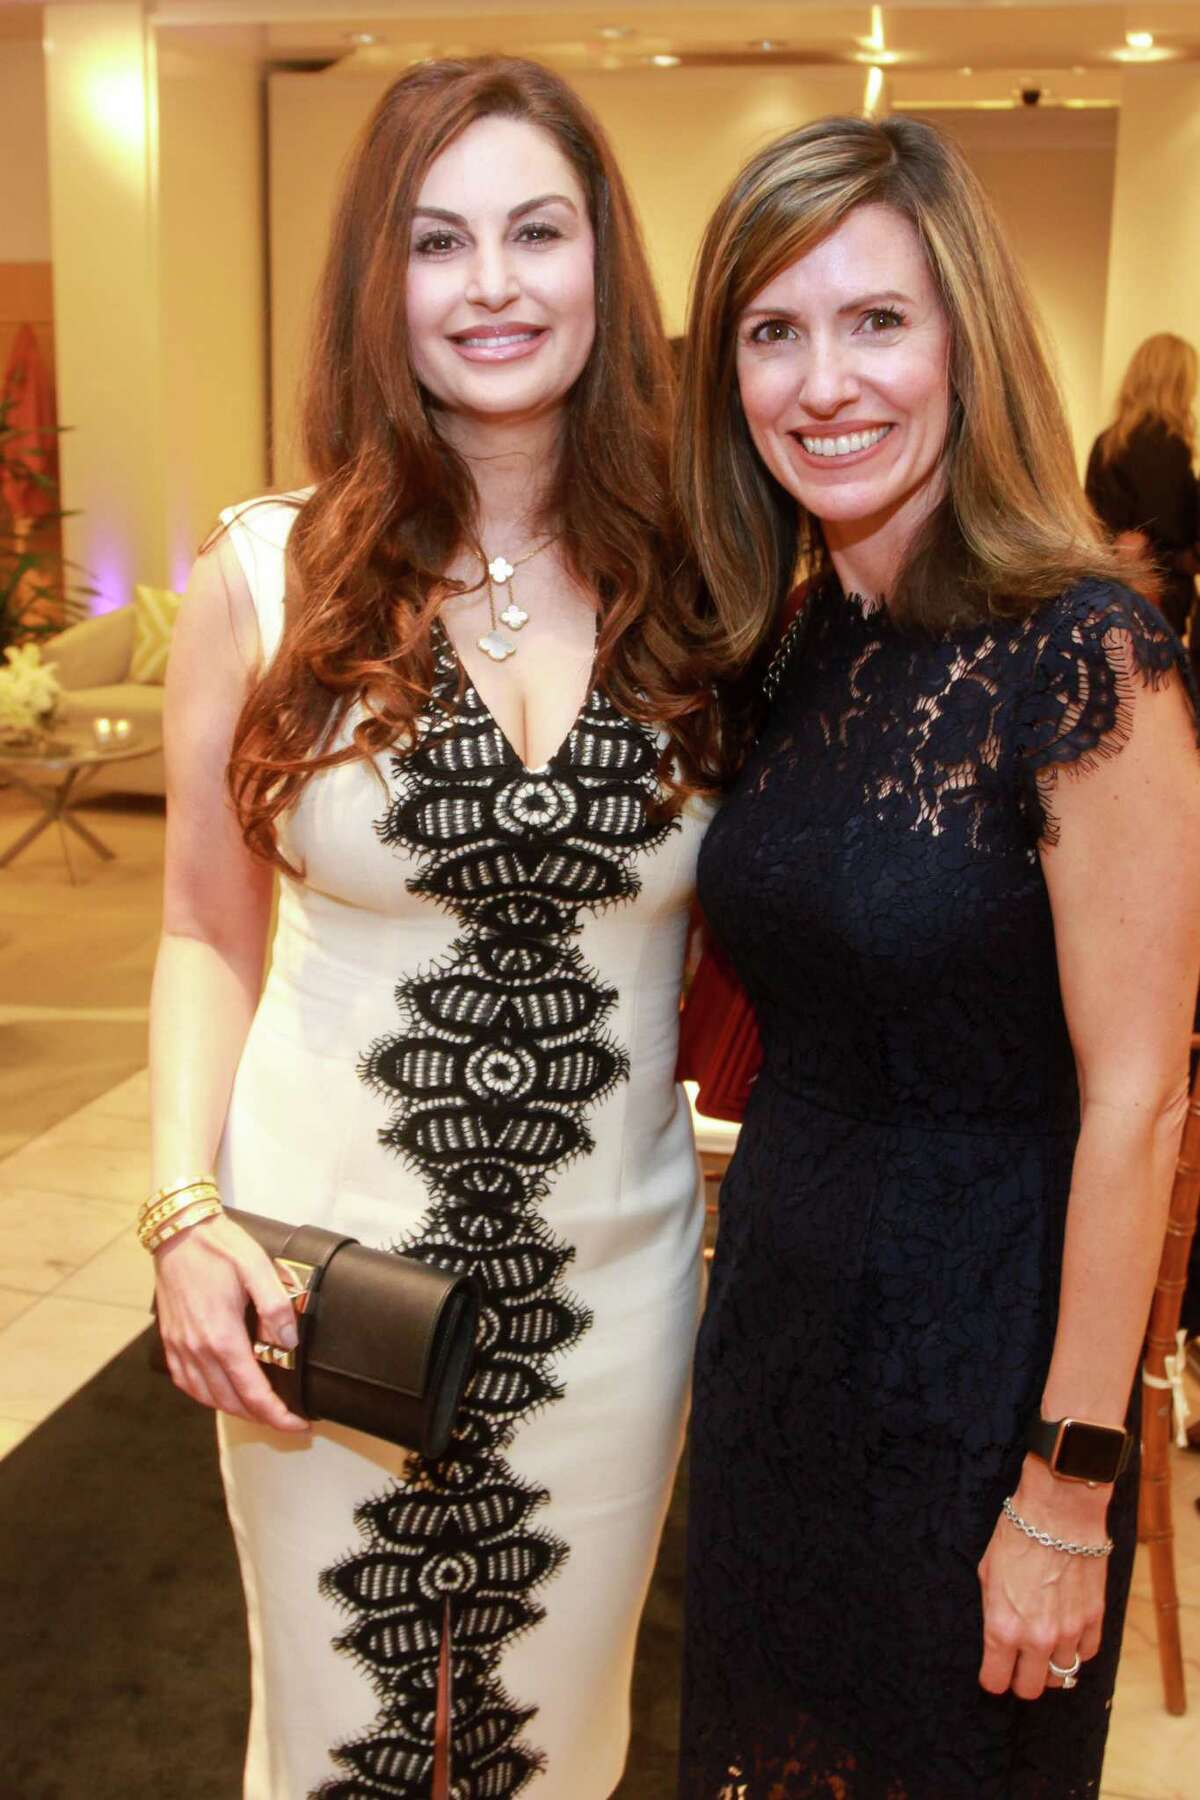 Brigitte Kalai, left, and Sara McEown at the Houston Chronicle Best Dressed Announcement Party at Neiman Marcus on October 29, 2019.